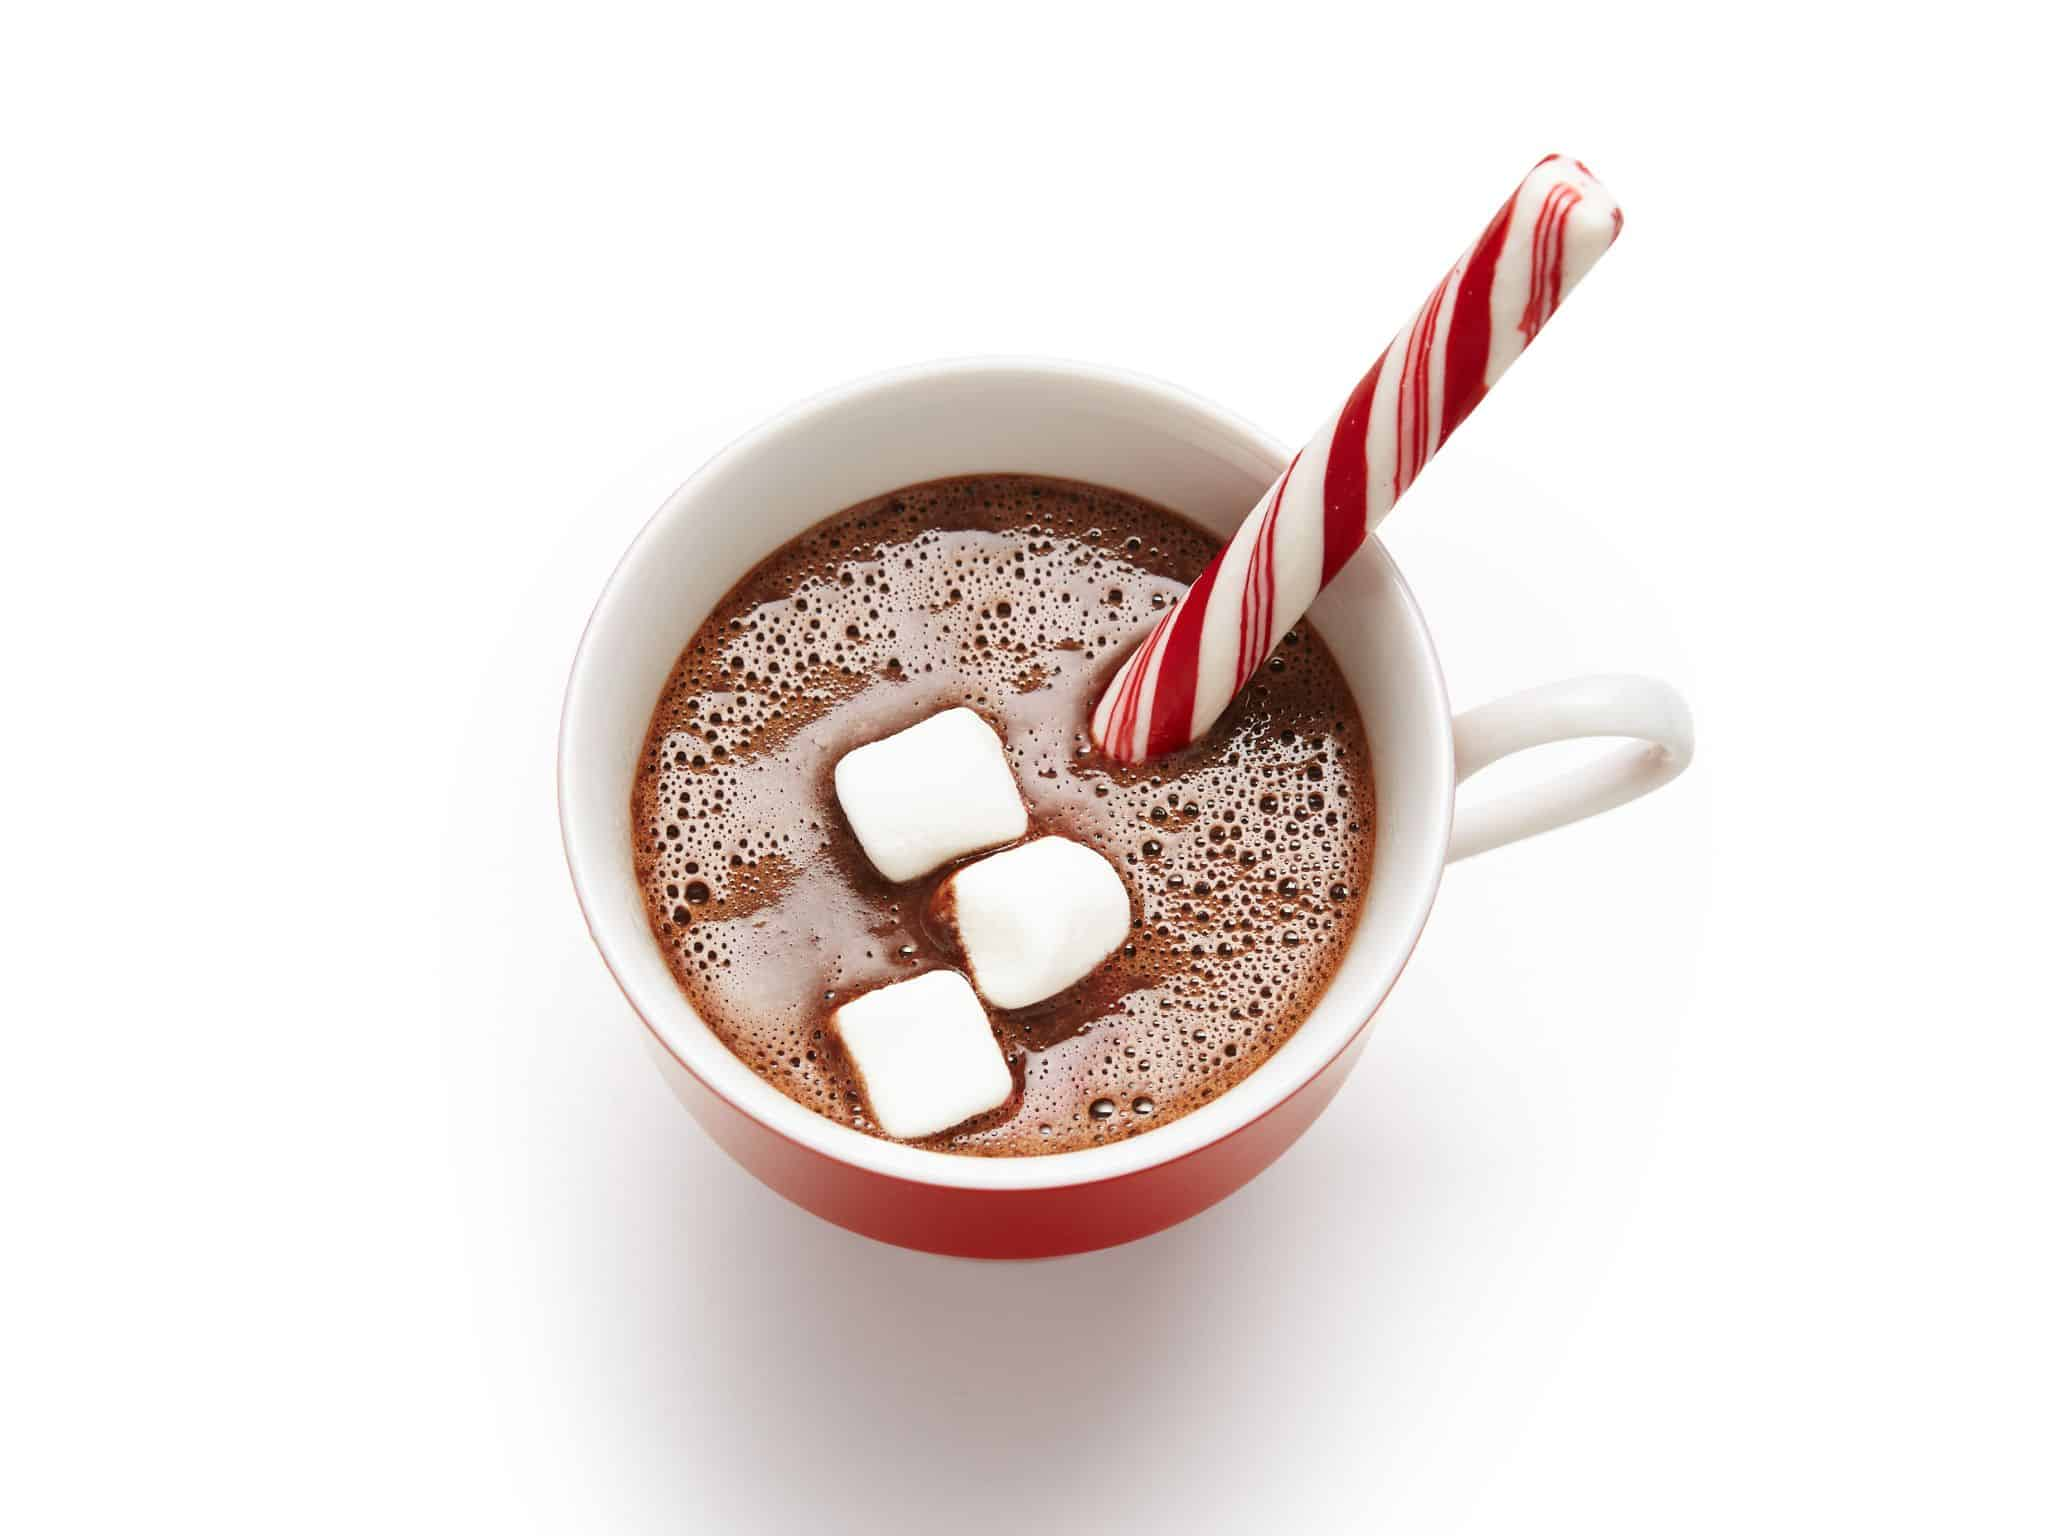 Hot chocolate with marshmallows and a candy cane stir stick